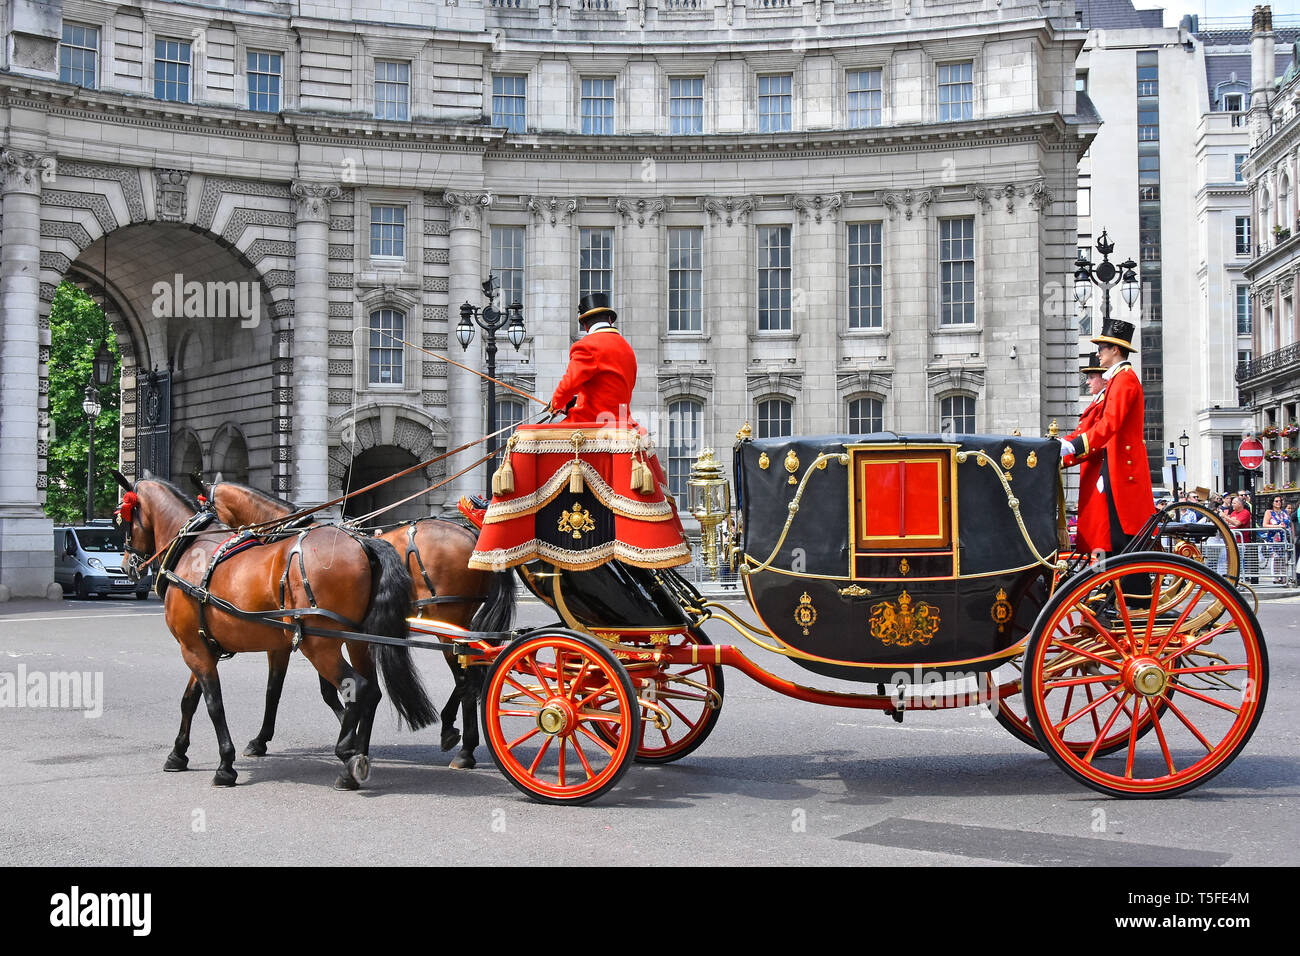 Horse drawn State Landau carriage move towards  Admiralty Arch with coachman & footman in uniform after transporting diplomatic dignitaries London UK - Stock Image